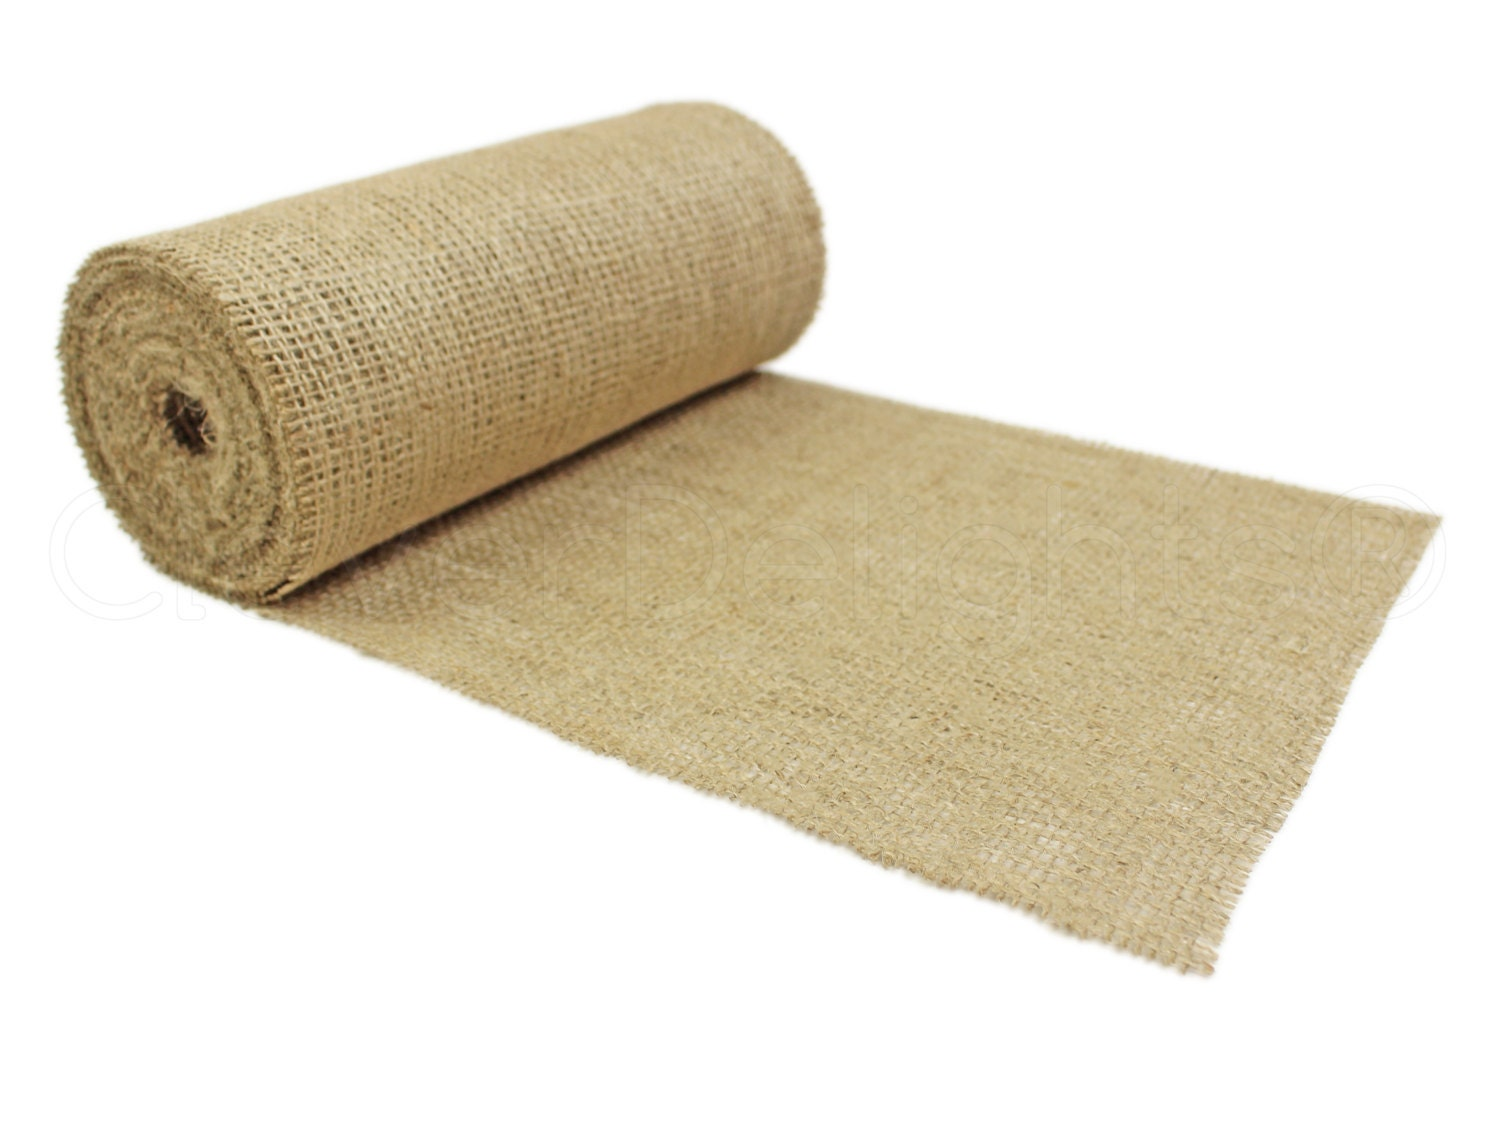 10 yards 9 burlap roll unfinished edges eco for 10 minute table runner 30 minute tote bag